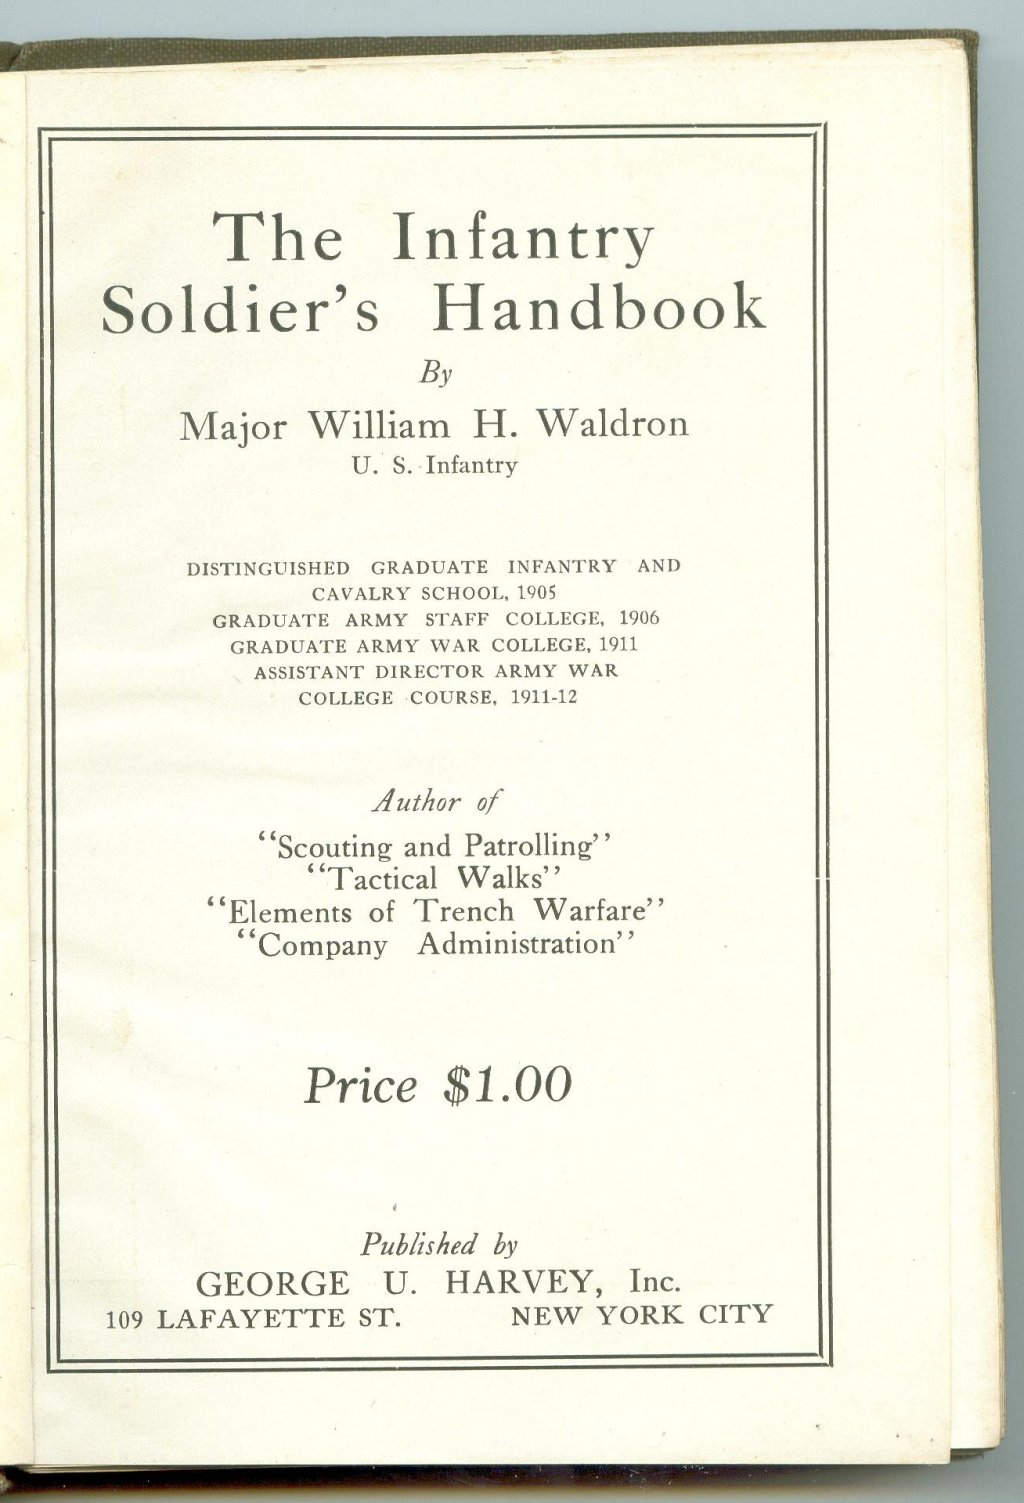 314th Infantry Regiment - Infantry Soldiers Handbook - Waldron - Page 000